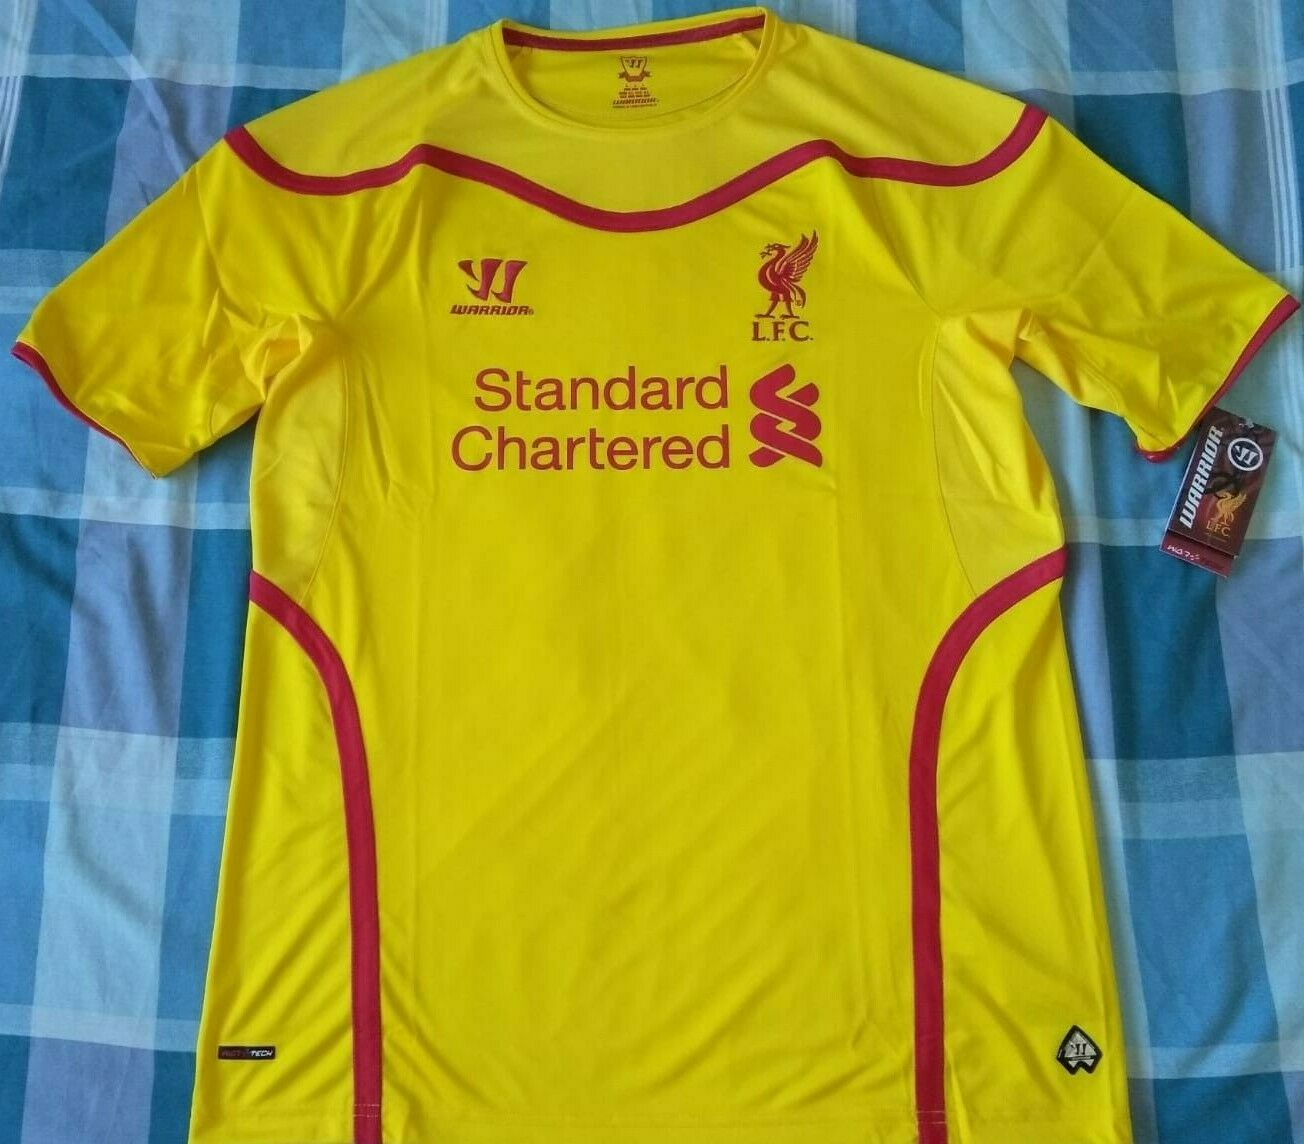 Shirt Camiseta Trikot LIVERPOOL Warrior Season 2014 Diuominiione L Away nuovo wtags